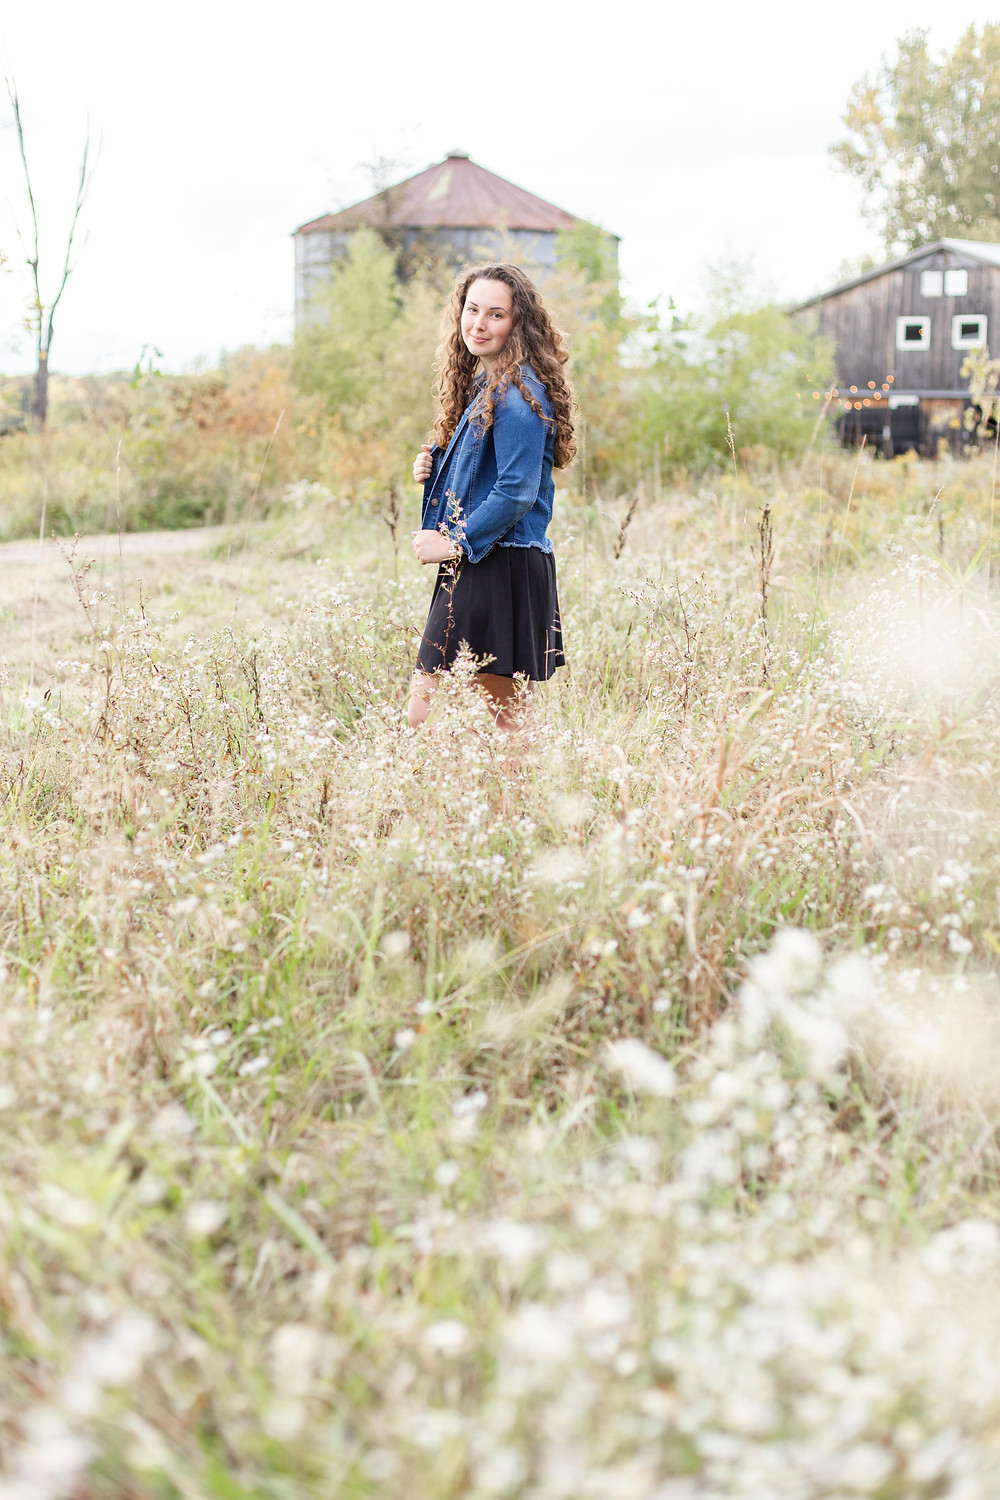 Josh and Andrea wedding photography husband and wife team michigan senior photo shoot session something blue berry wedding barn girl walking in field